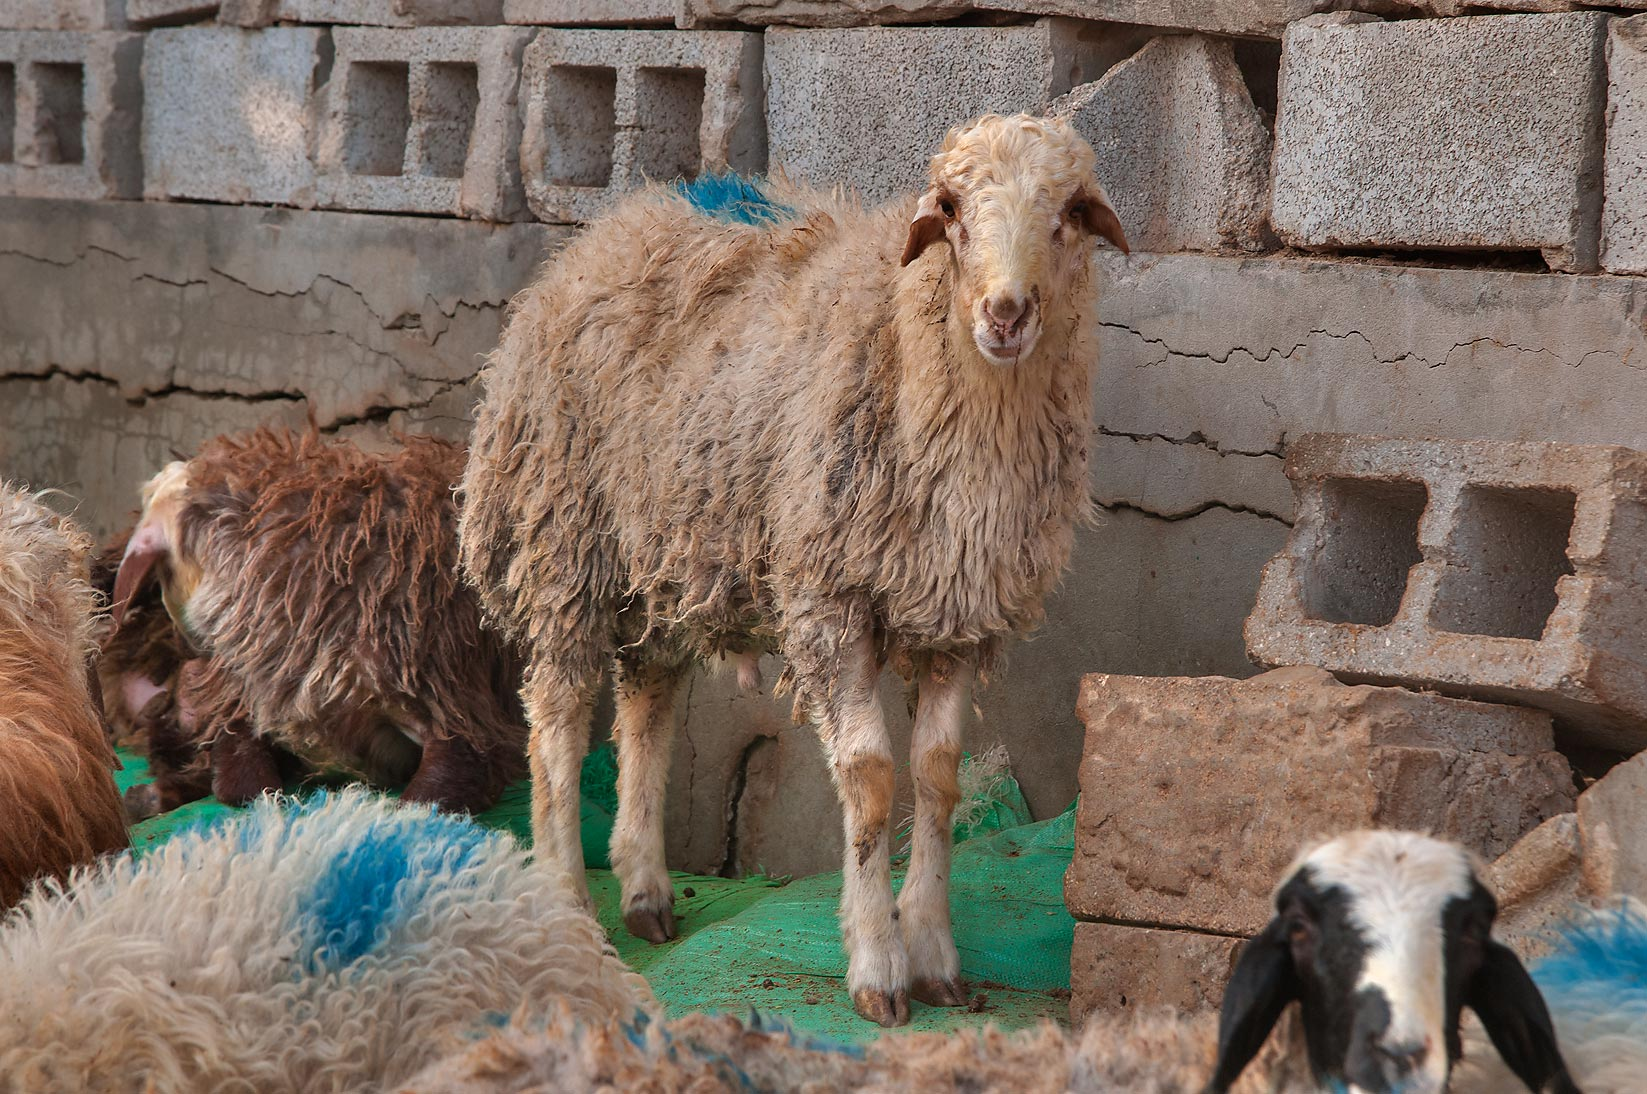 Sheep standing on cinder blocks in Sheep Market, Wholesale Markets area. Doha, Qatar